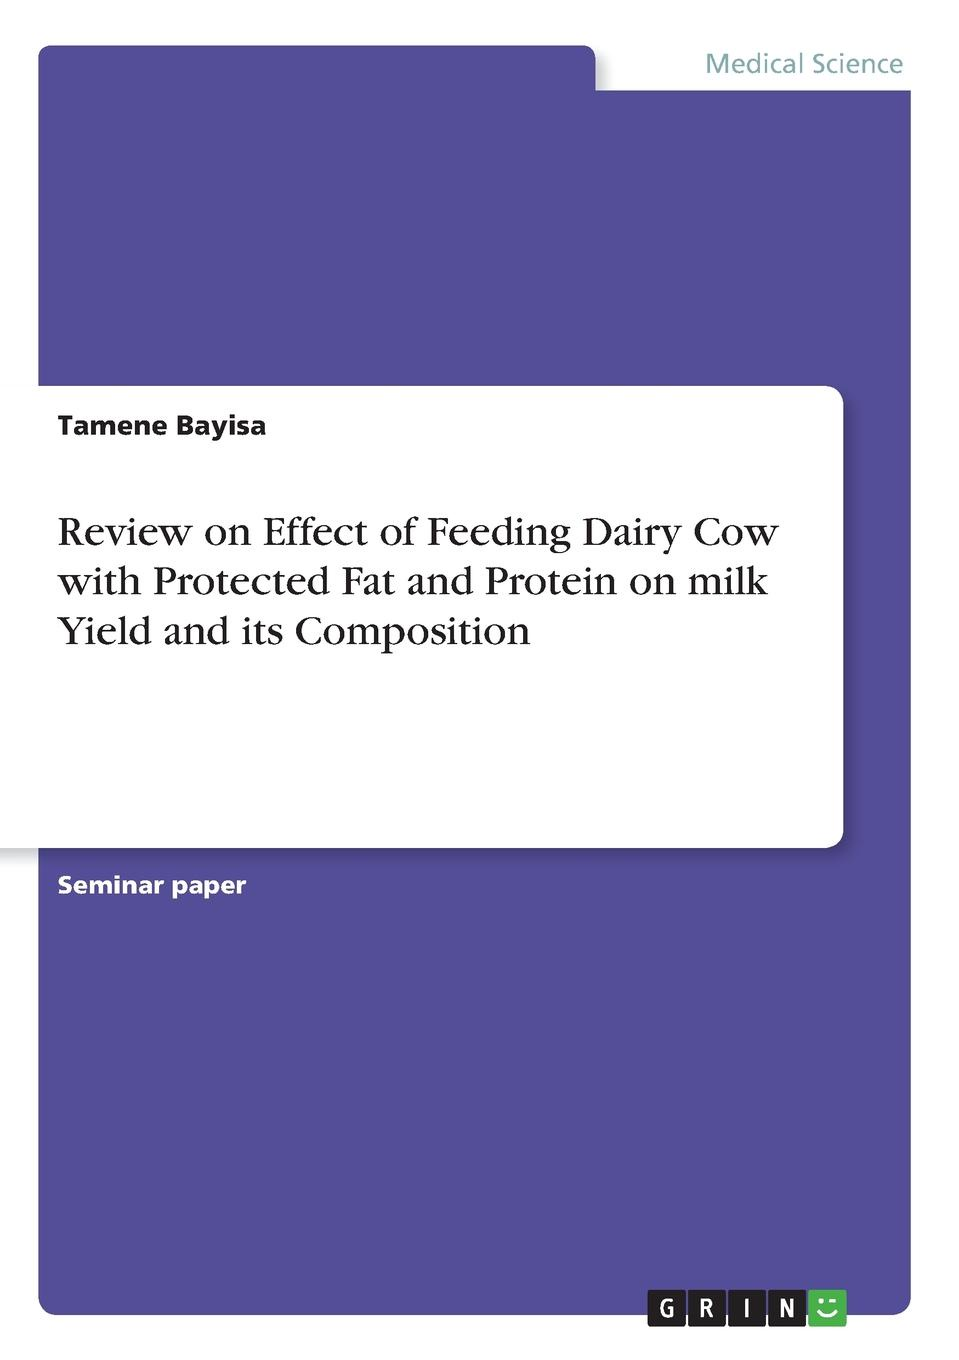 Tamene Bayisa Review on Effect of Feeding Dairy Cow with Protected Fat and Protein on milk Yield and its Composition цена